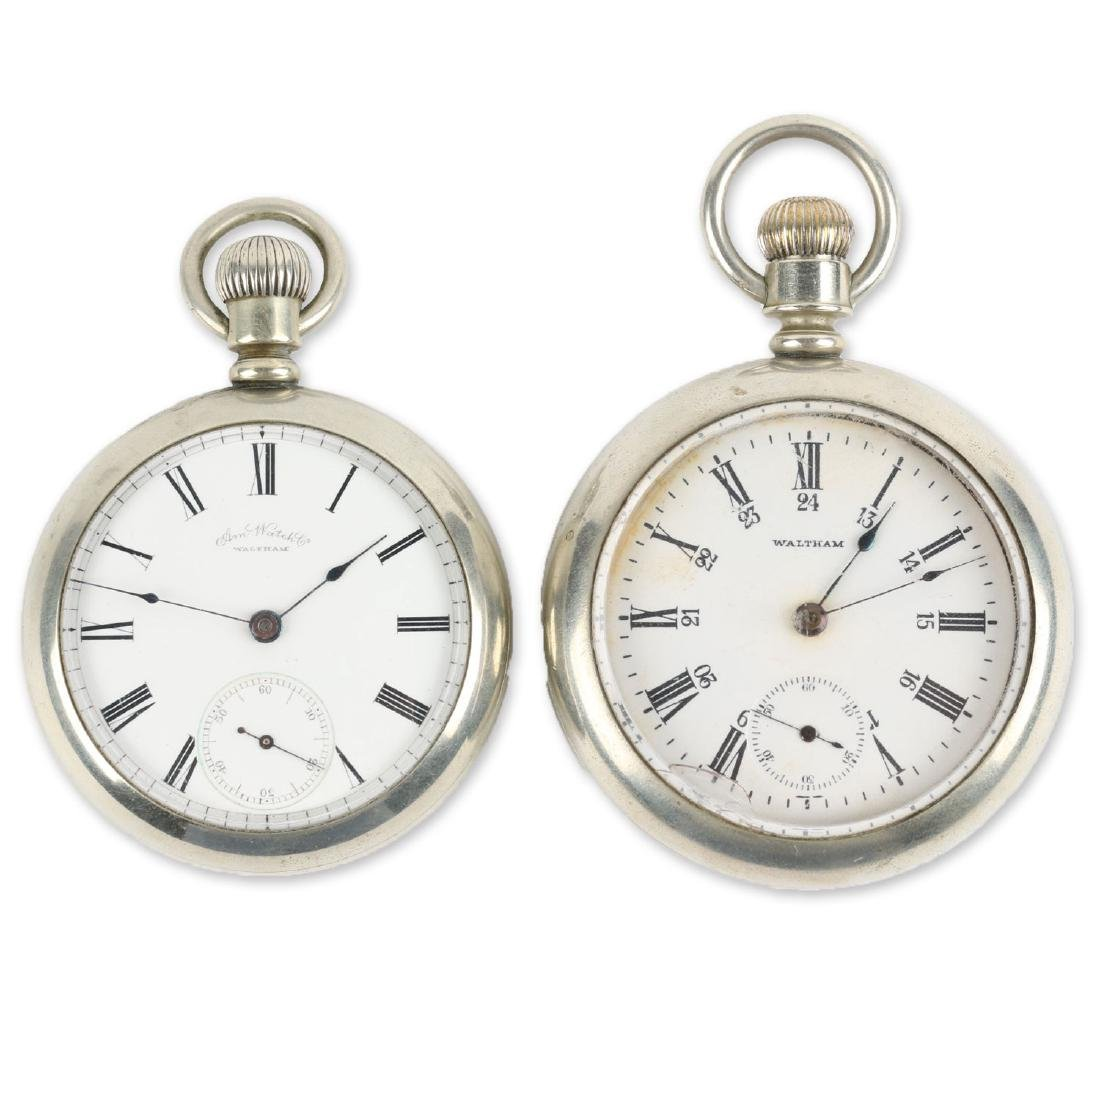 Two (2) Nickel 18S 1883 Model Waltham Pocket Watches